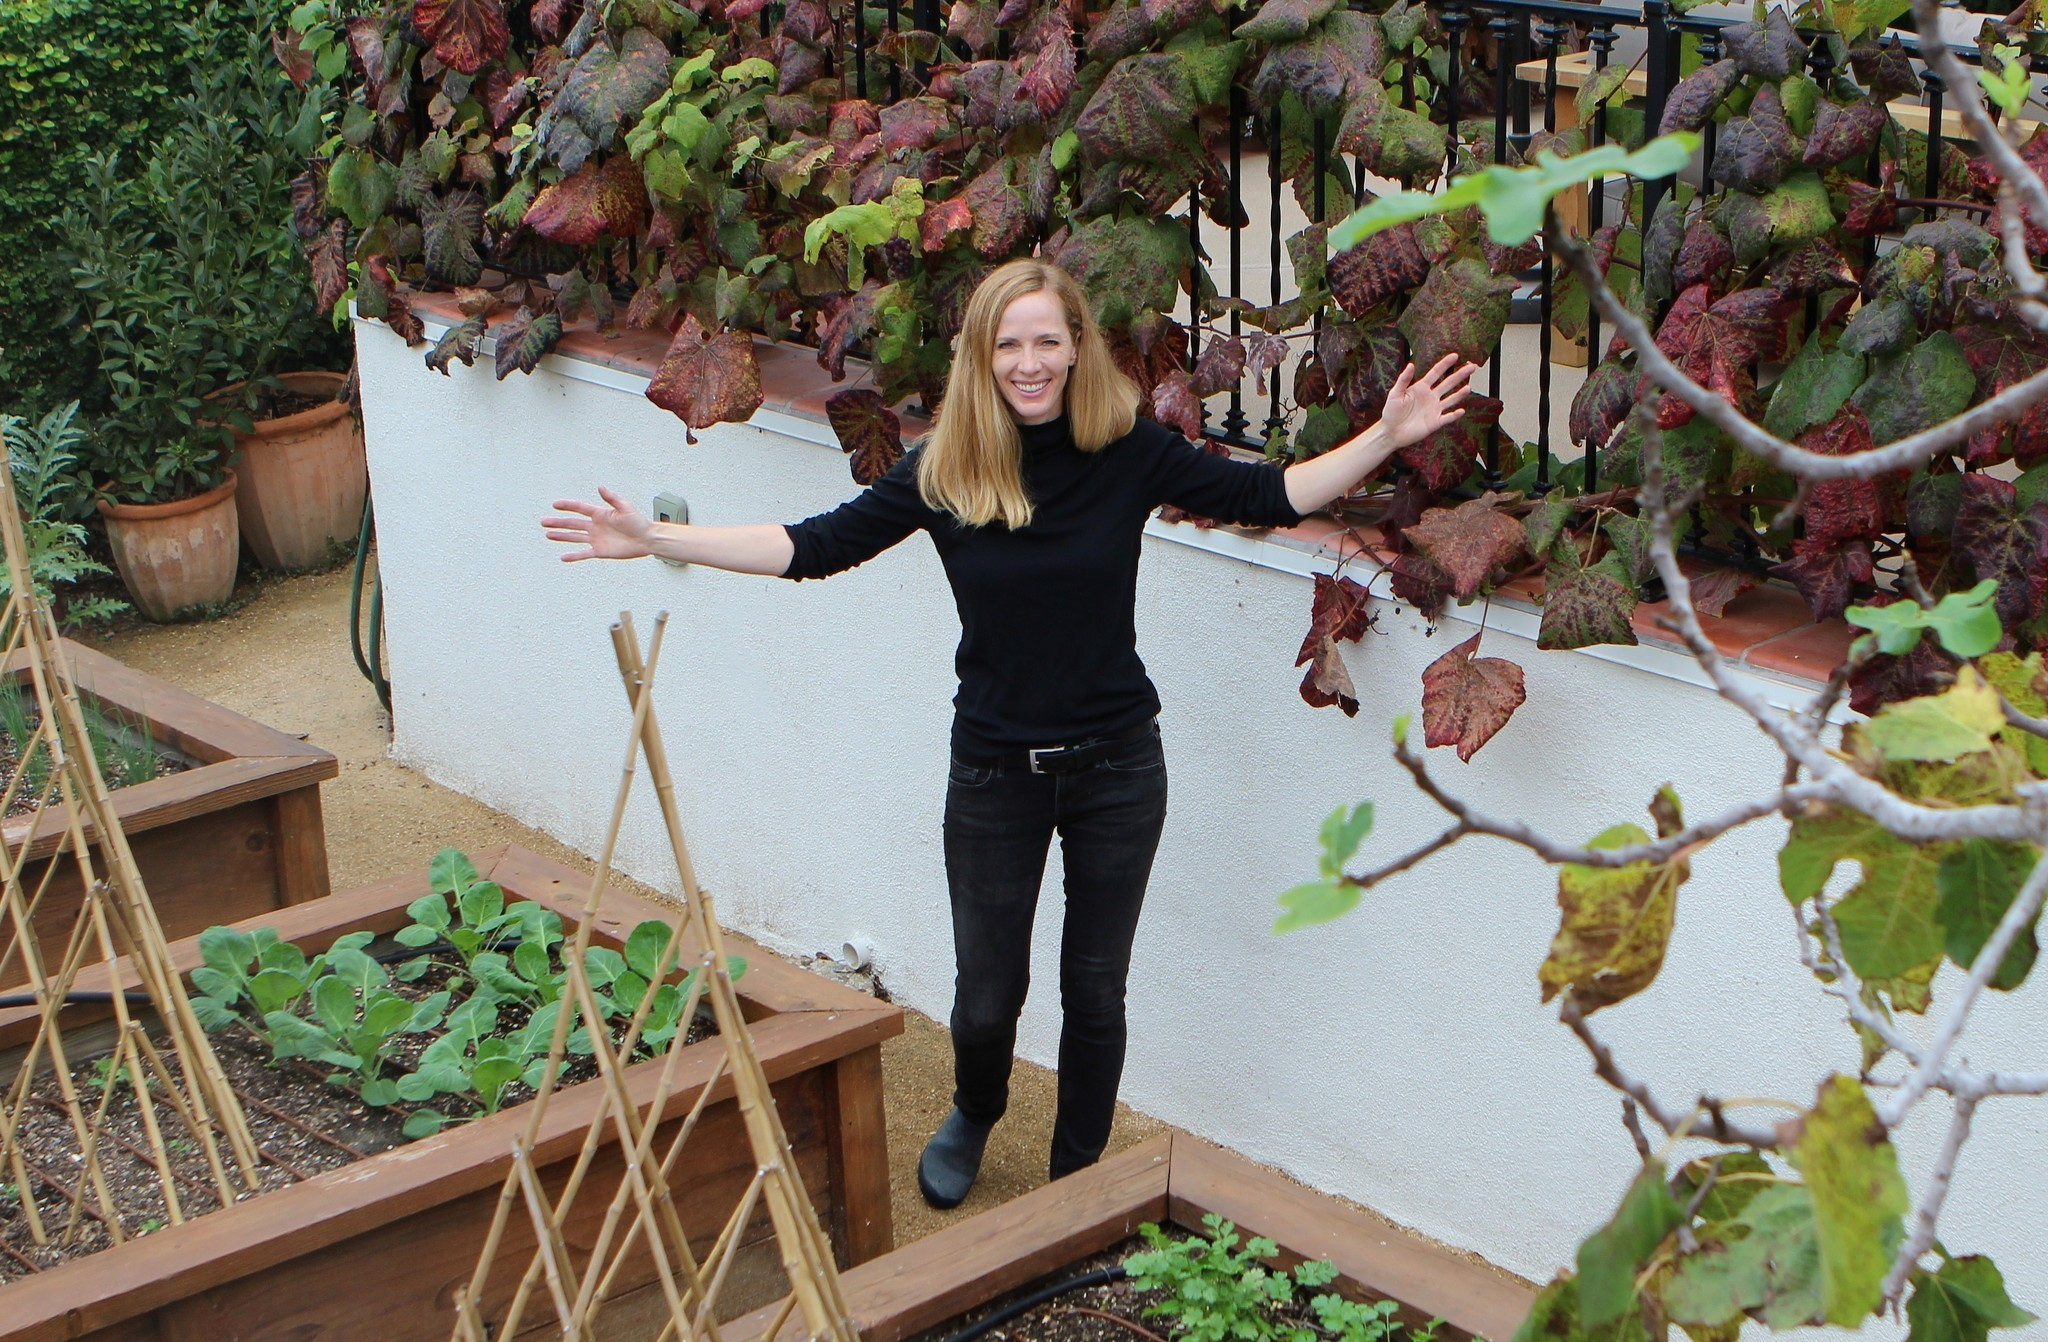 Erin McConkey takes pride in her urban farm.